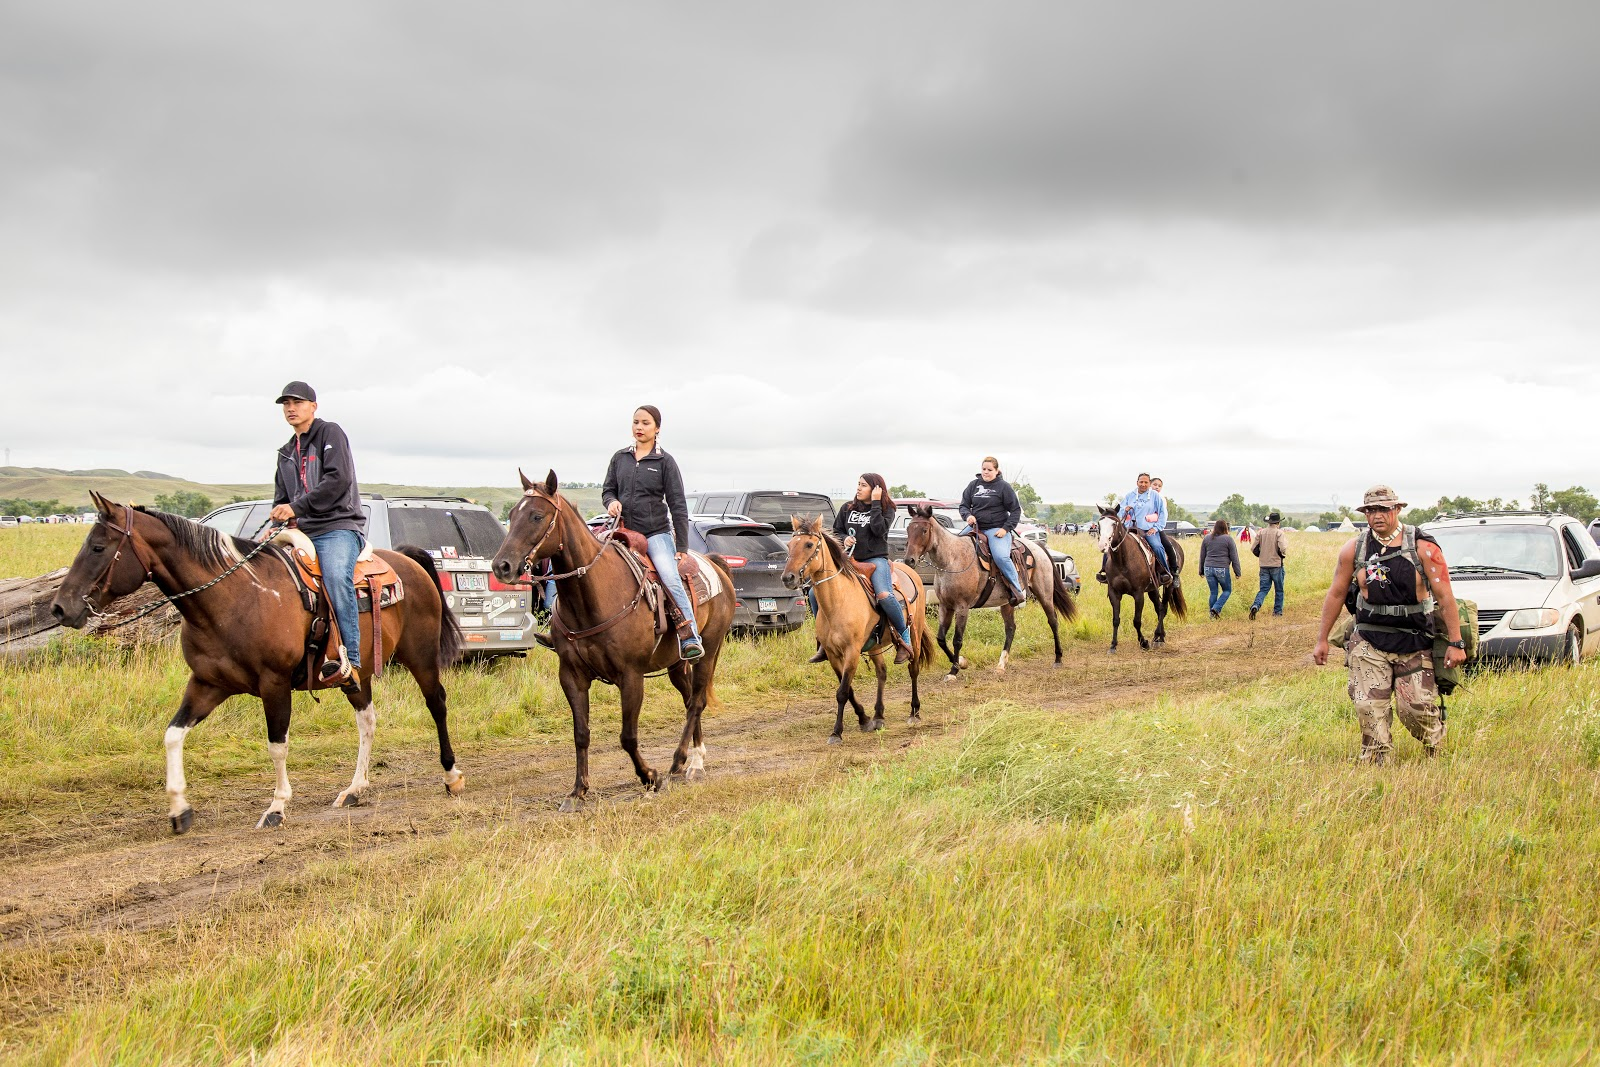 Horses and their riders receive an escort to the water to see the paddlers off. (Photo: Alex Hamer)